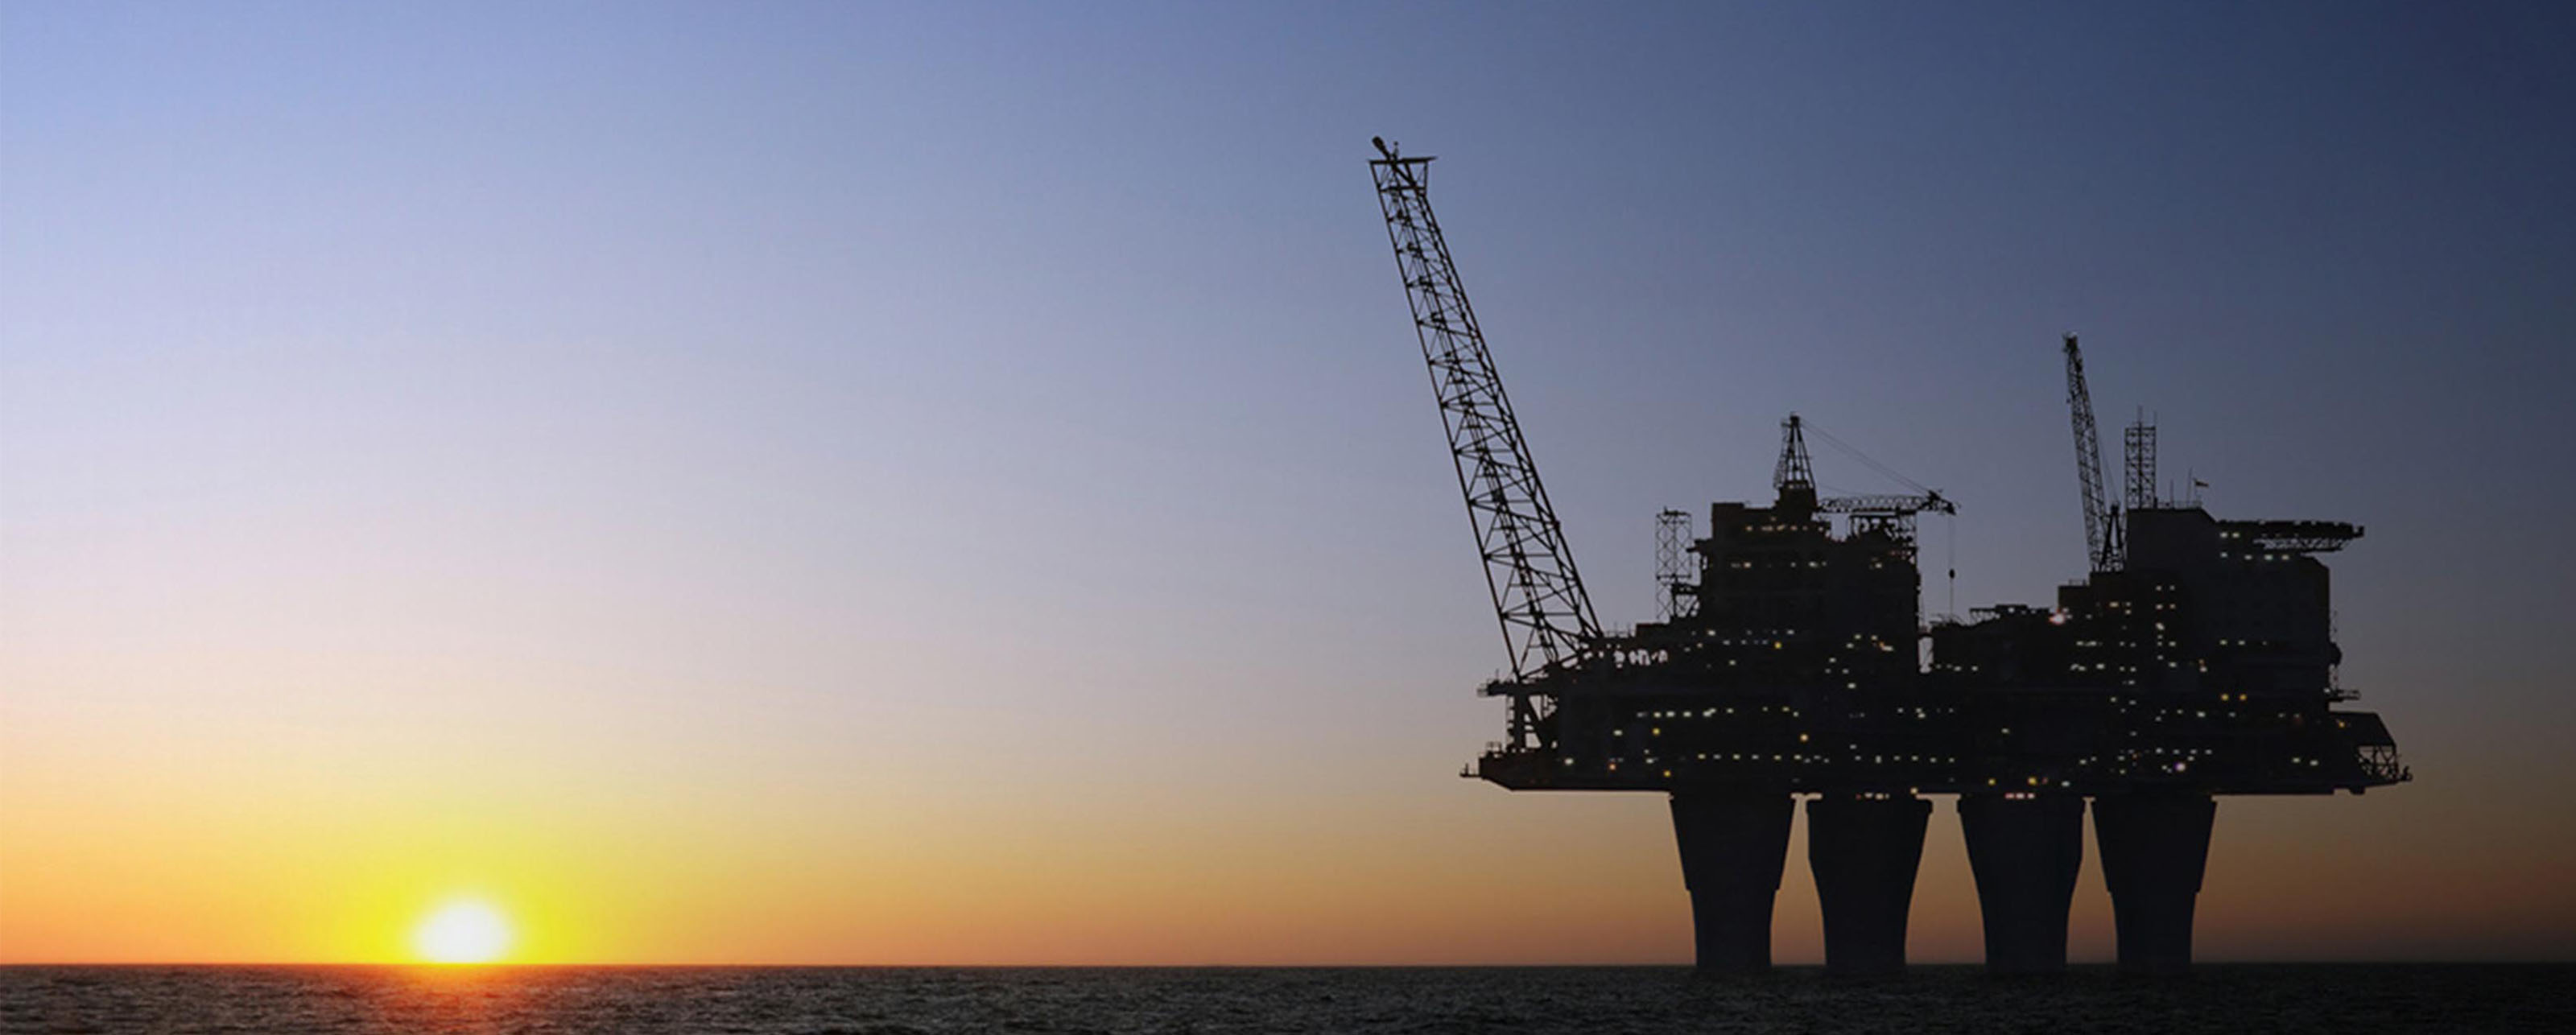 Offshore oil rig | GE Digital